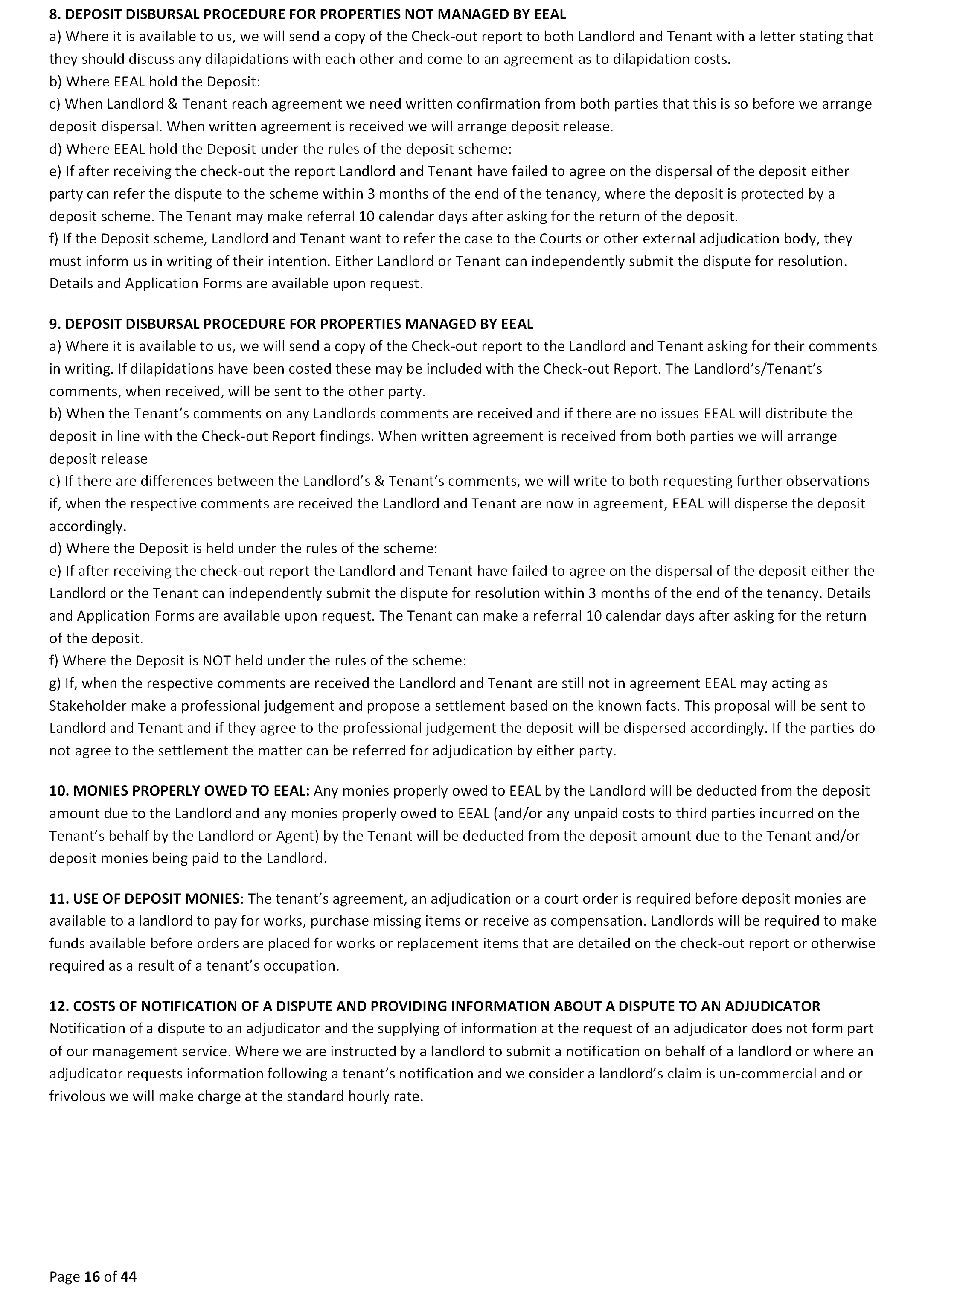 GUIDE TO LANDLORDS-16